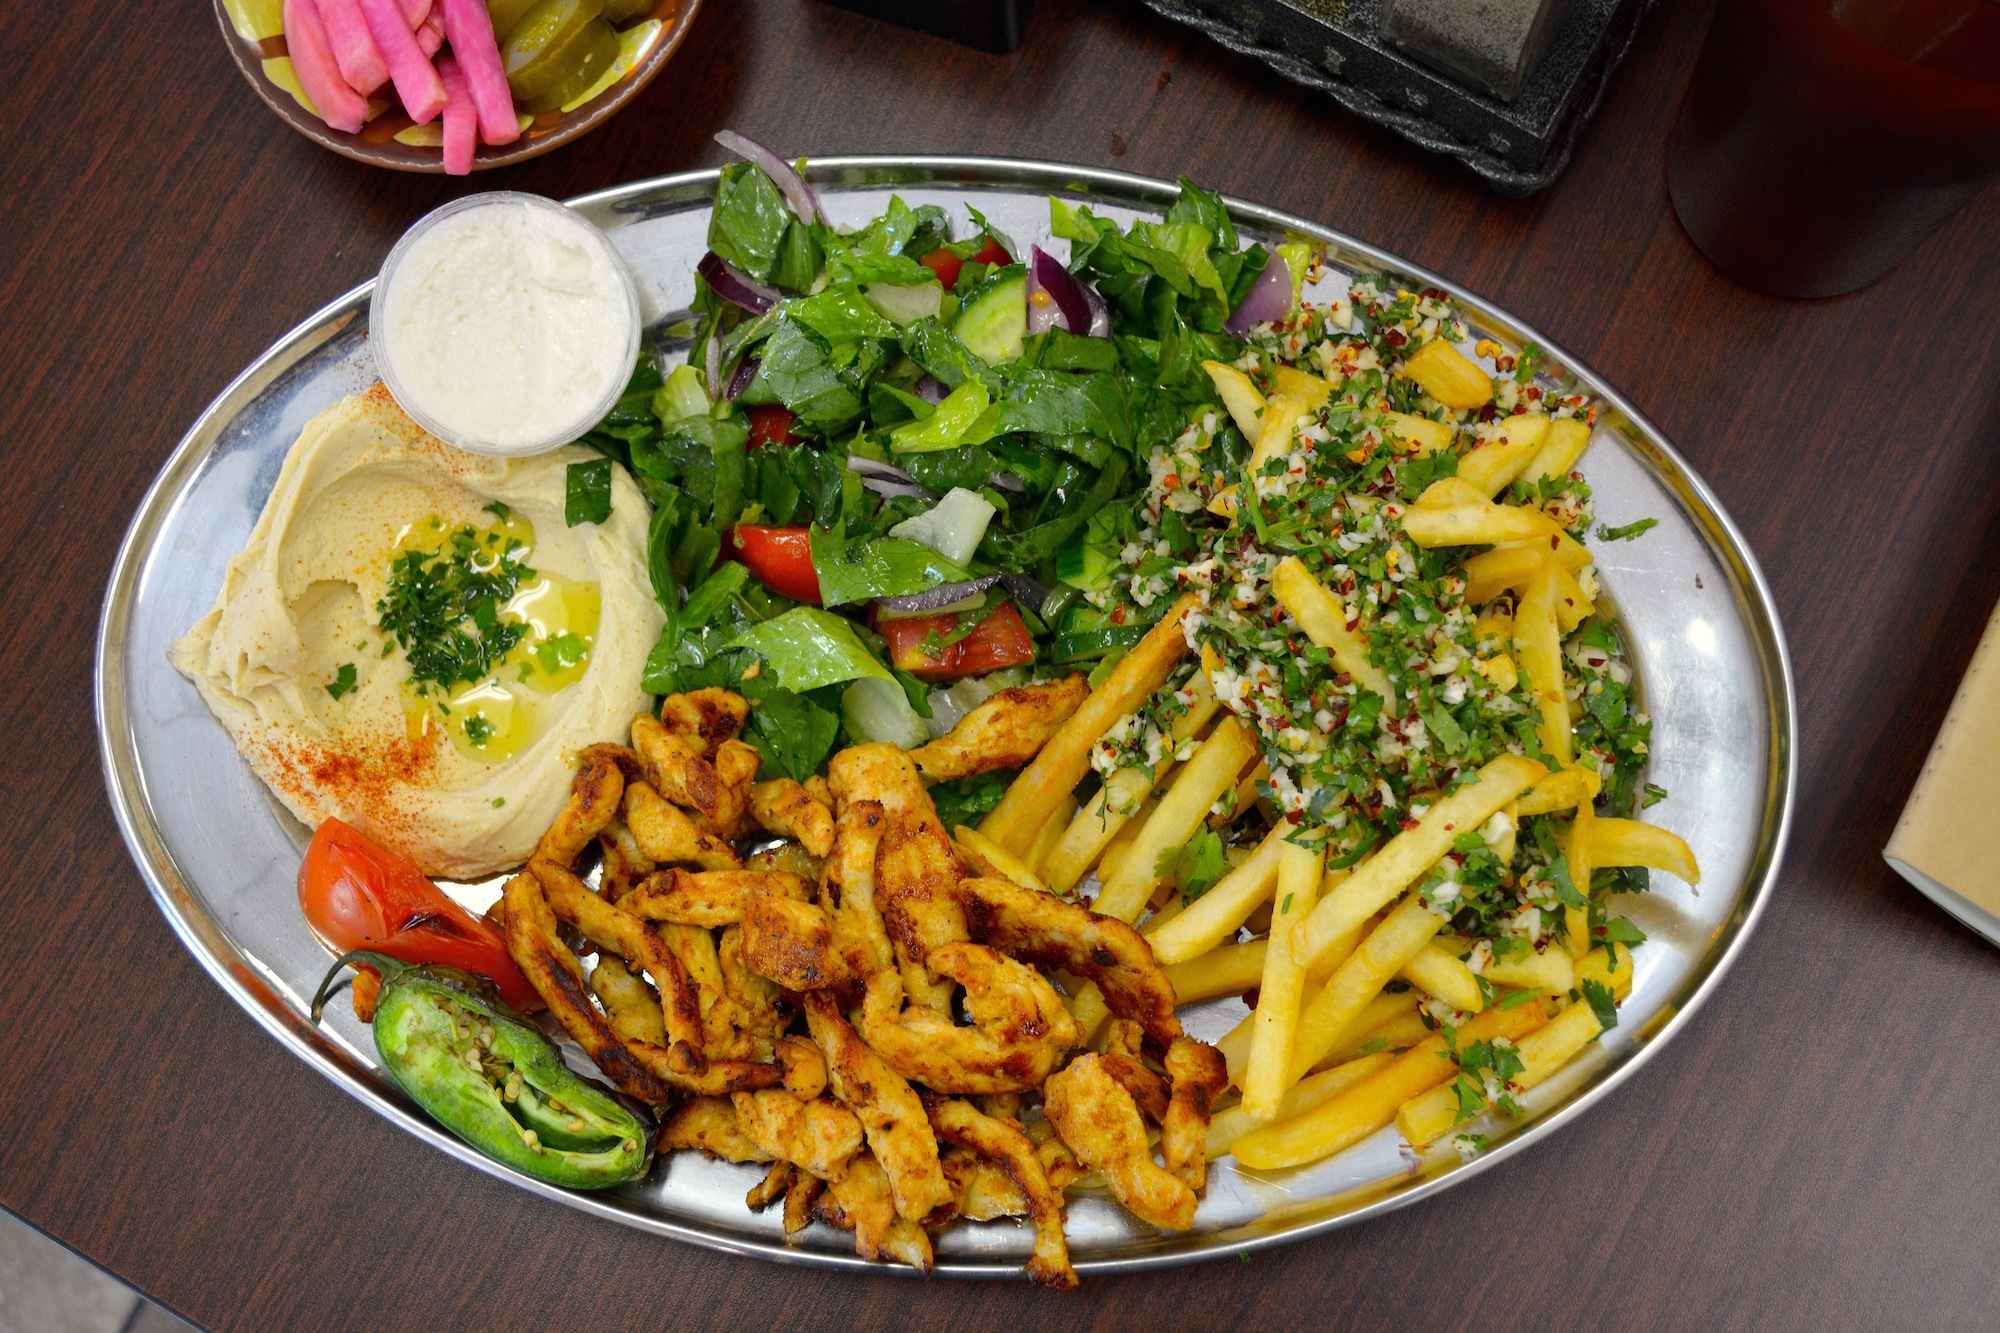 A Celebrated Hollywood Lebanese Restaurant Closes After Just Six Months